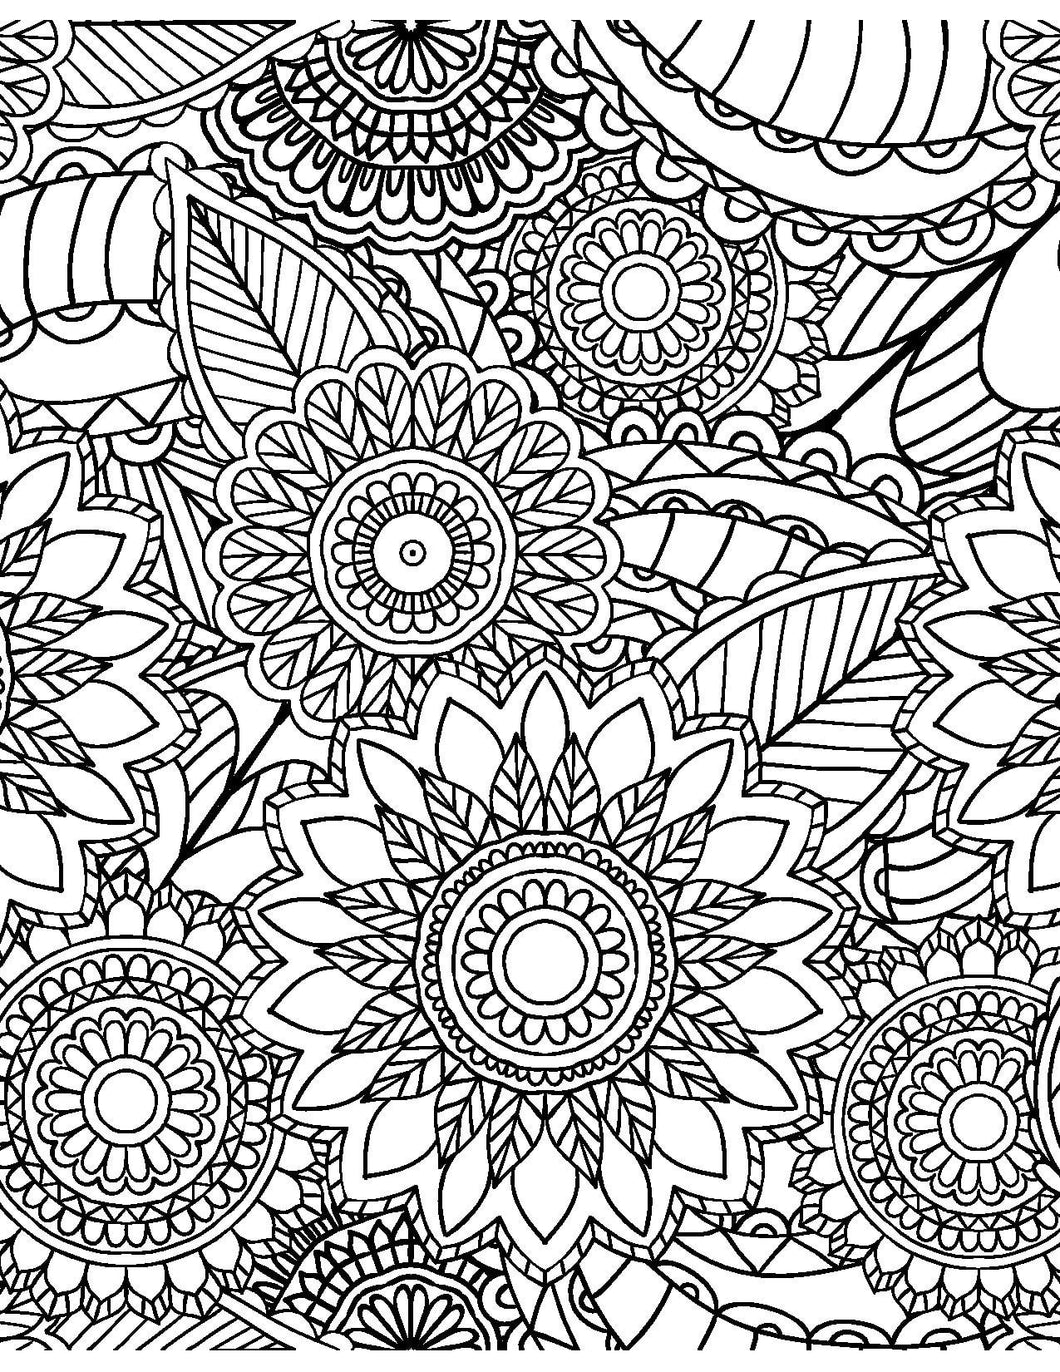 calming coloring pages for adults printable | Calming Patterns for Adults Who Color - Live Your Life in ...